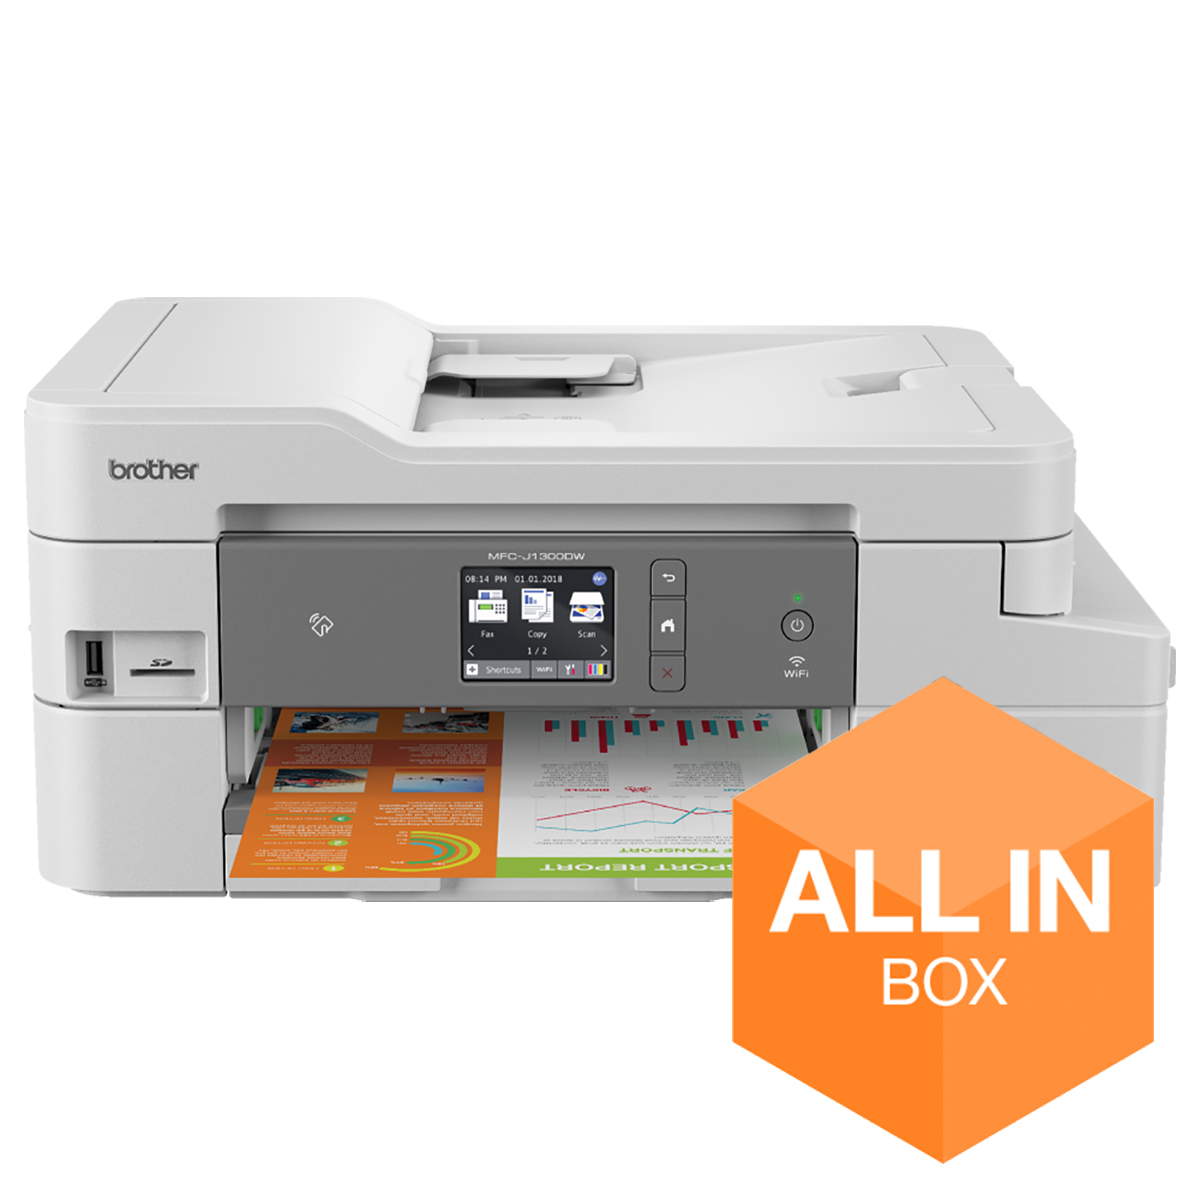 Brother MFC-J1300DW All in Box A4 Colour Inkjet Multifunction